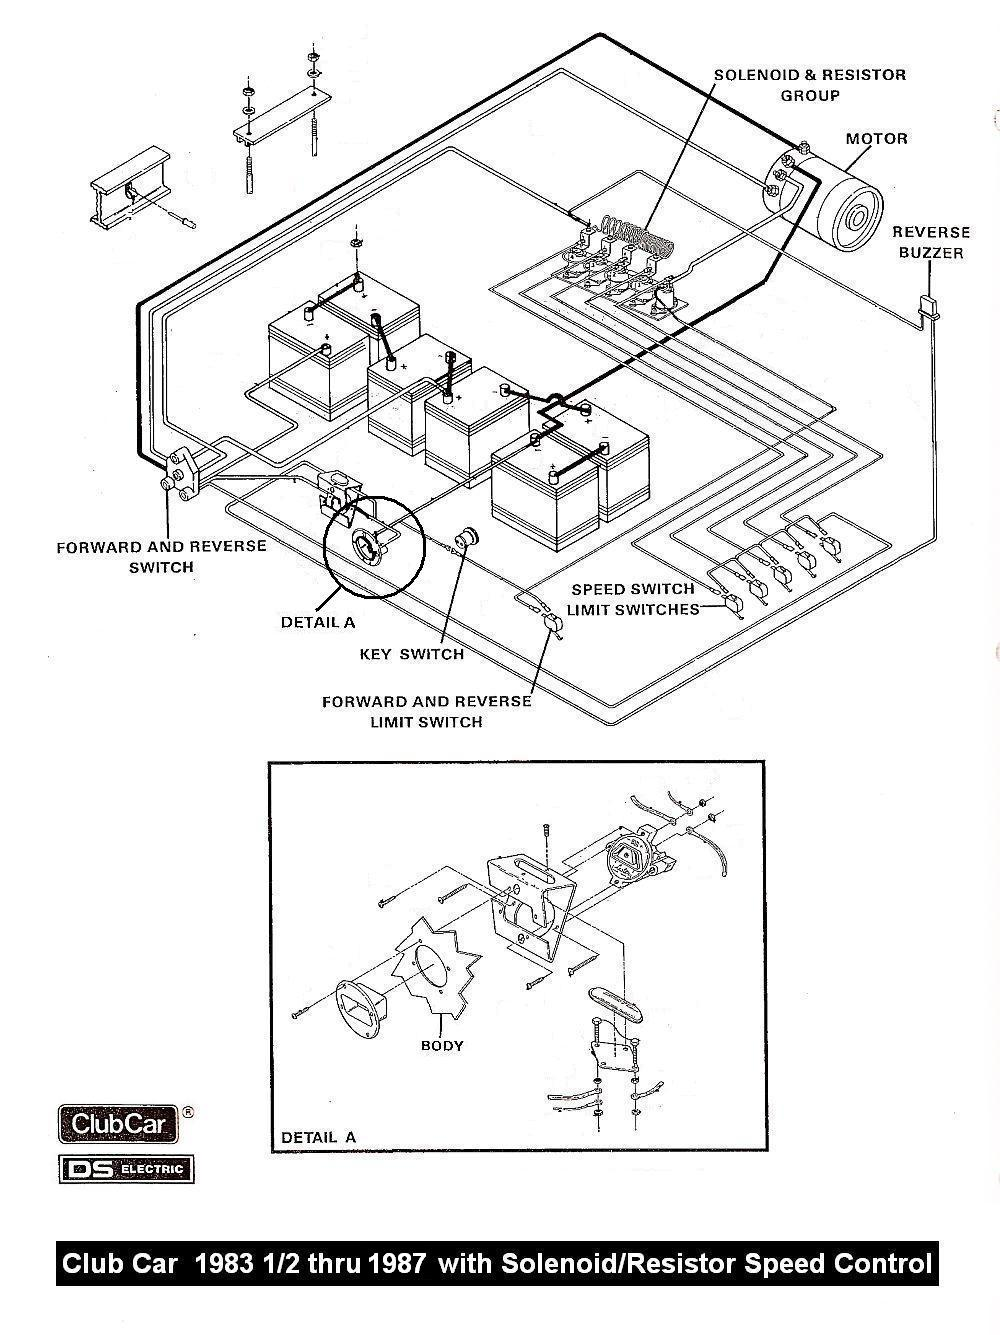 1987 club car wiring diagram trusted wiring diagram u2022 rh soulmatestyle co 48 Volt Club Car Troubleshooting 2009 Club Car Wiring Diagram